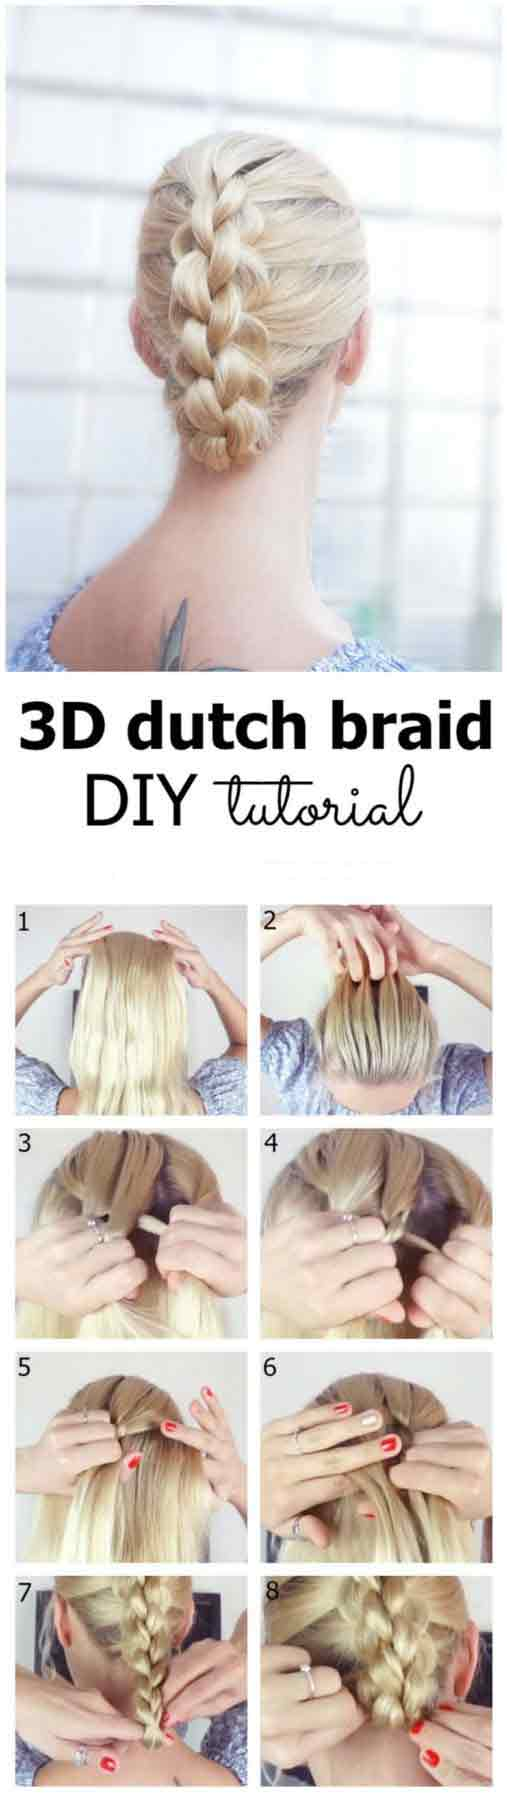 3D Dutch braid hairstyle step by step